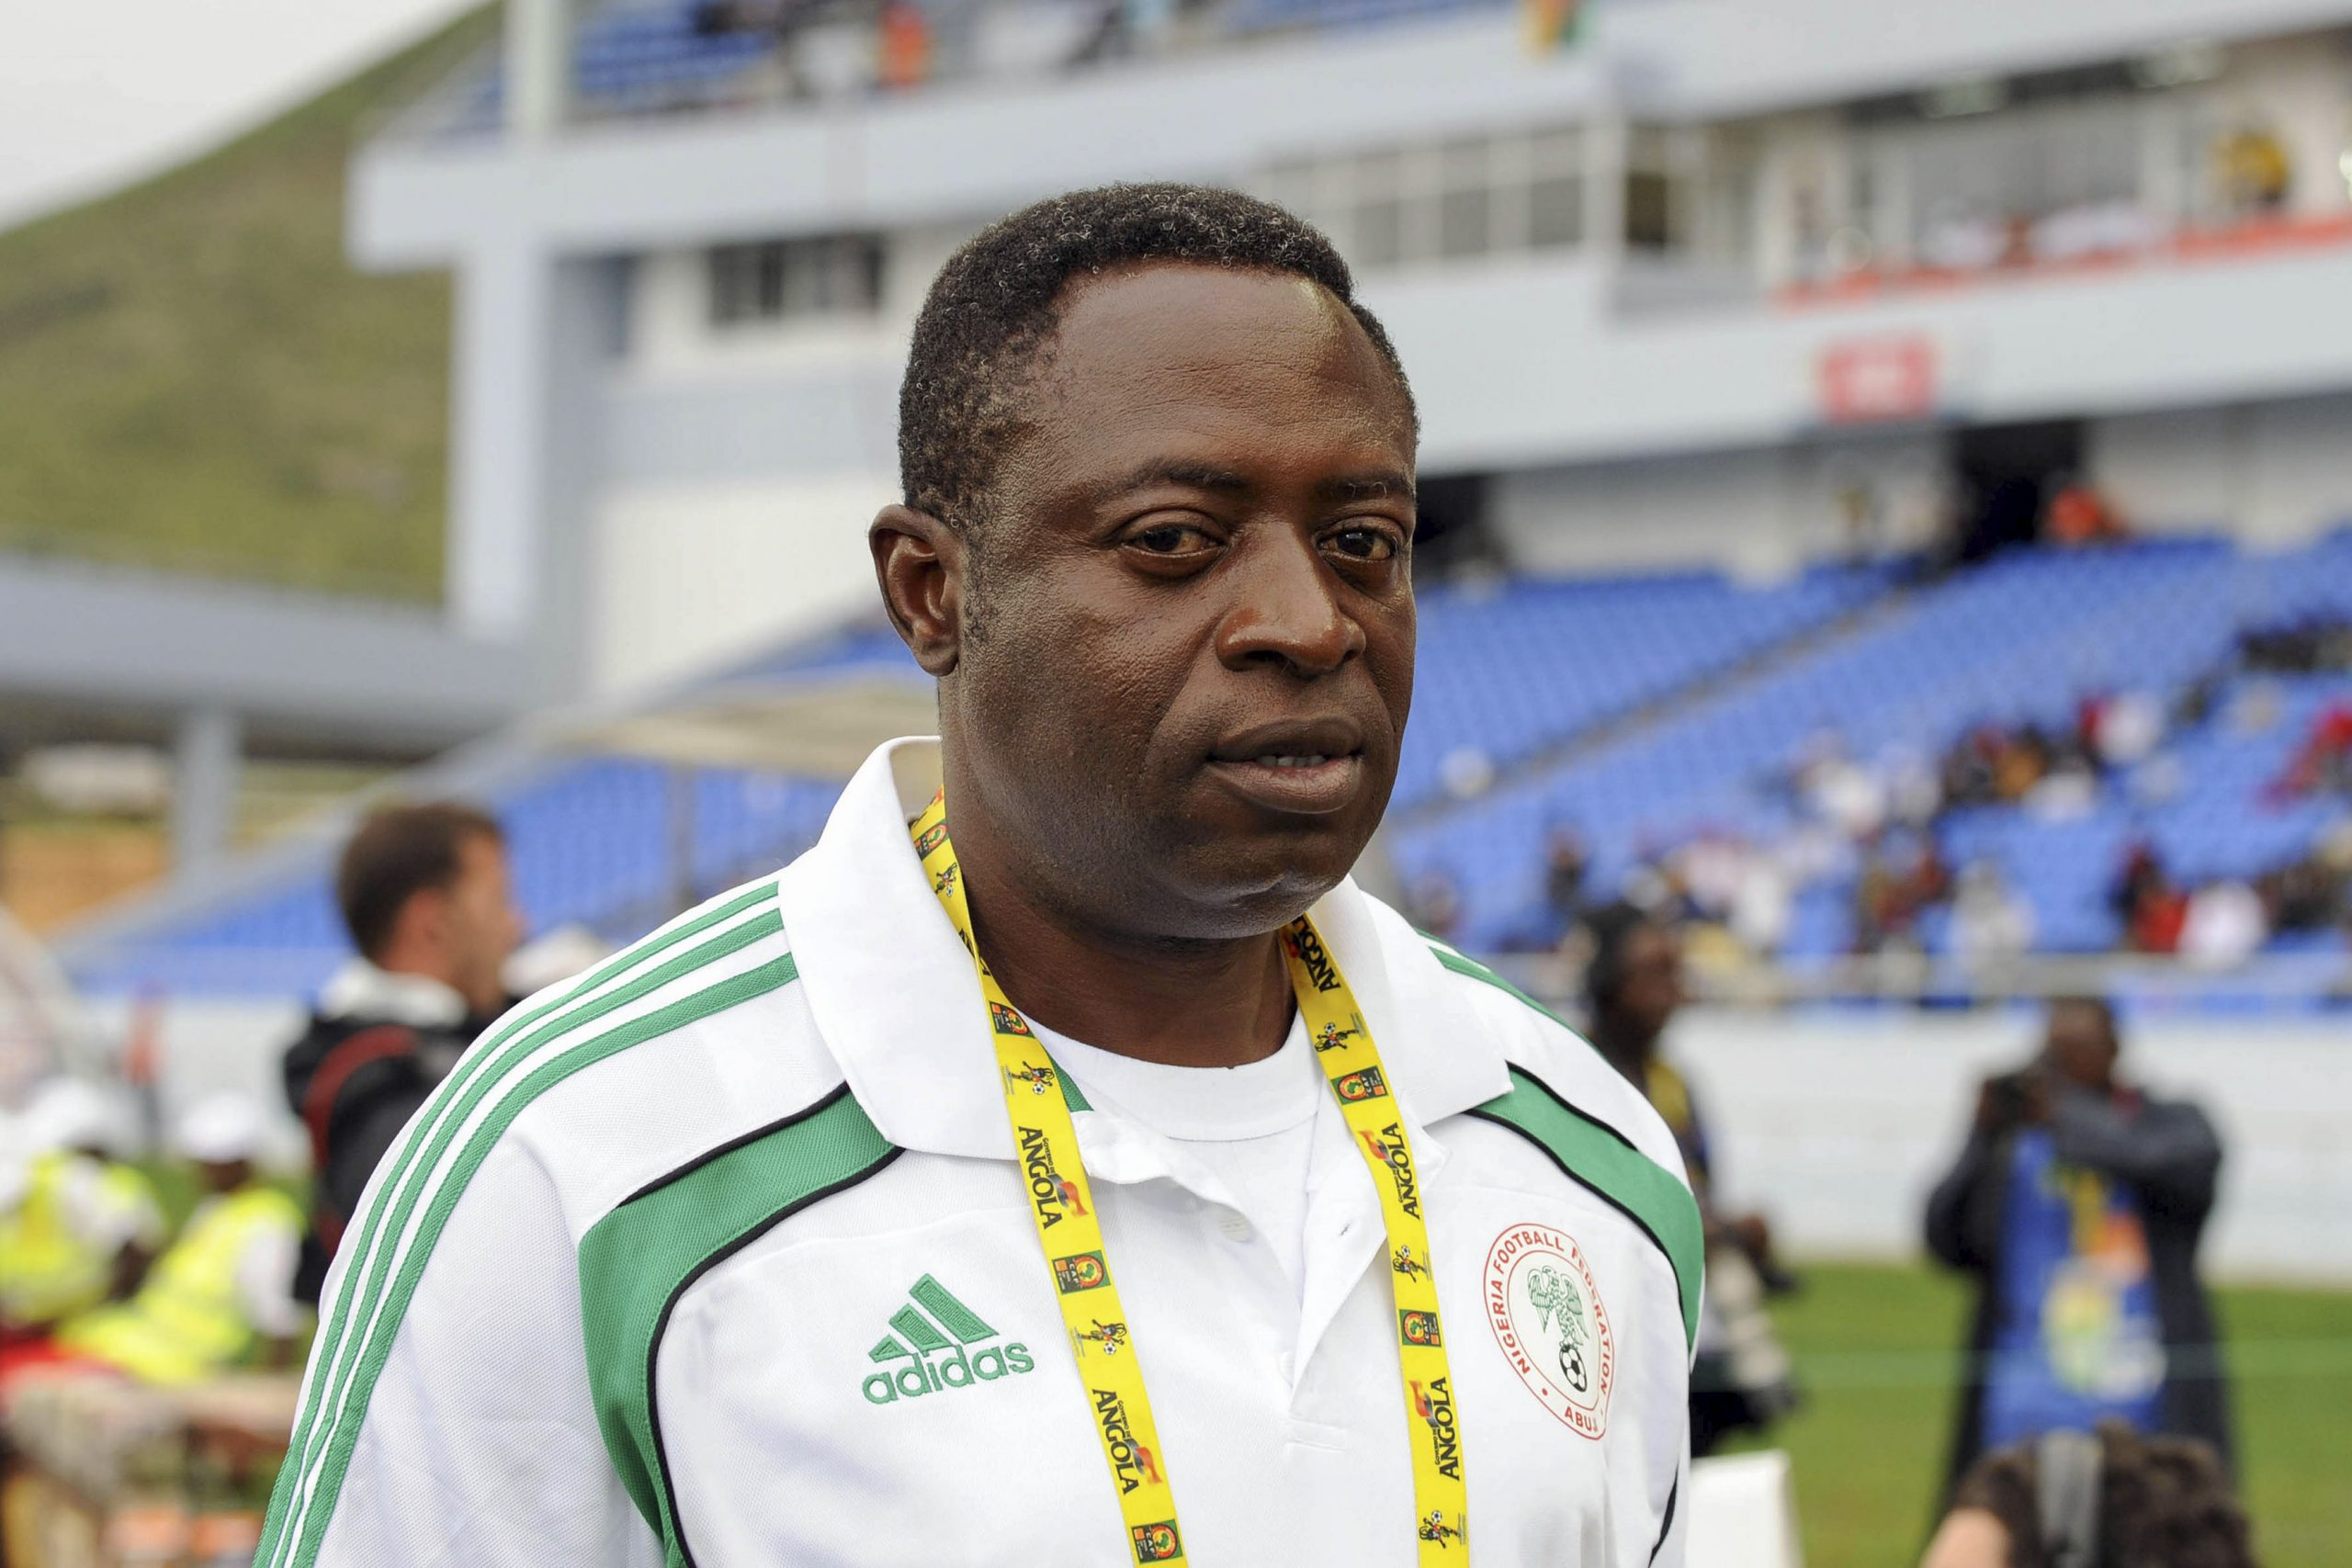 20 January 2010: Shaibu Amodu coached Nigeria during the 2010 African Nations Cup. Here he is photographed in Lubango, Angola, ahead of a Group C match against Mozambique. (Photograph by Lefty Shivambu/ Gallo Images/ Getty Images)